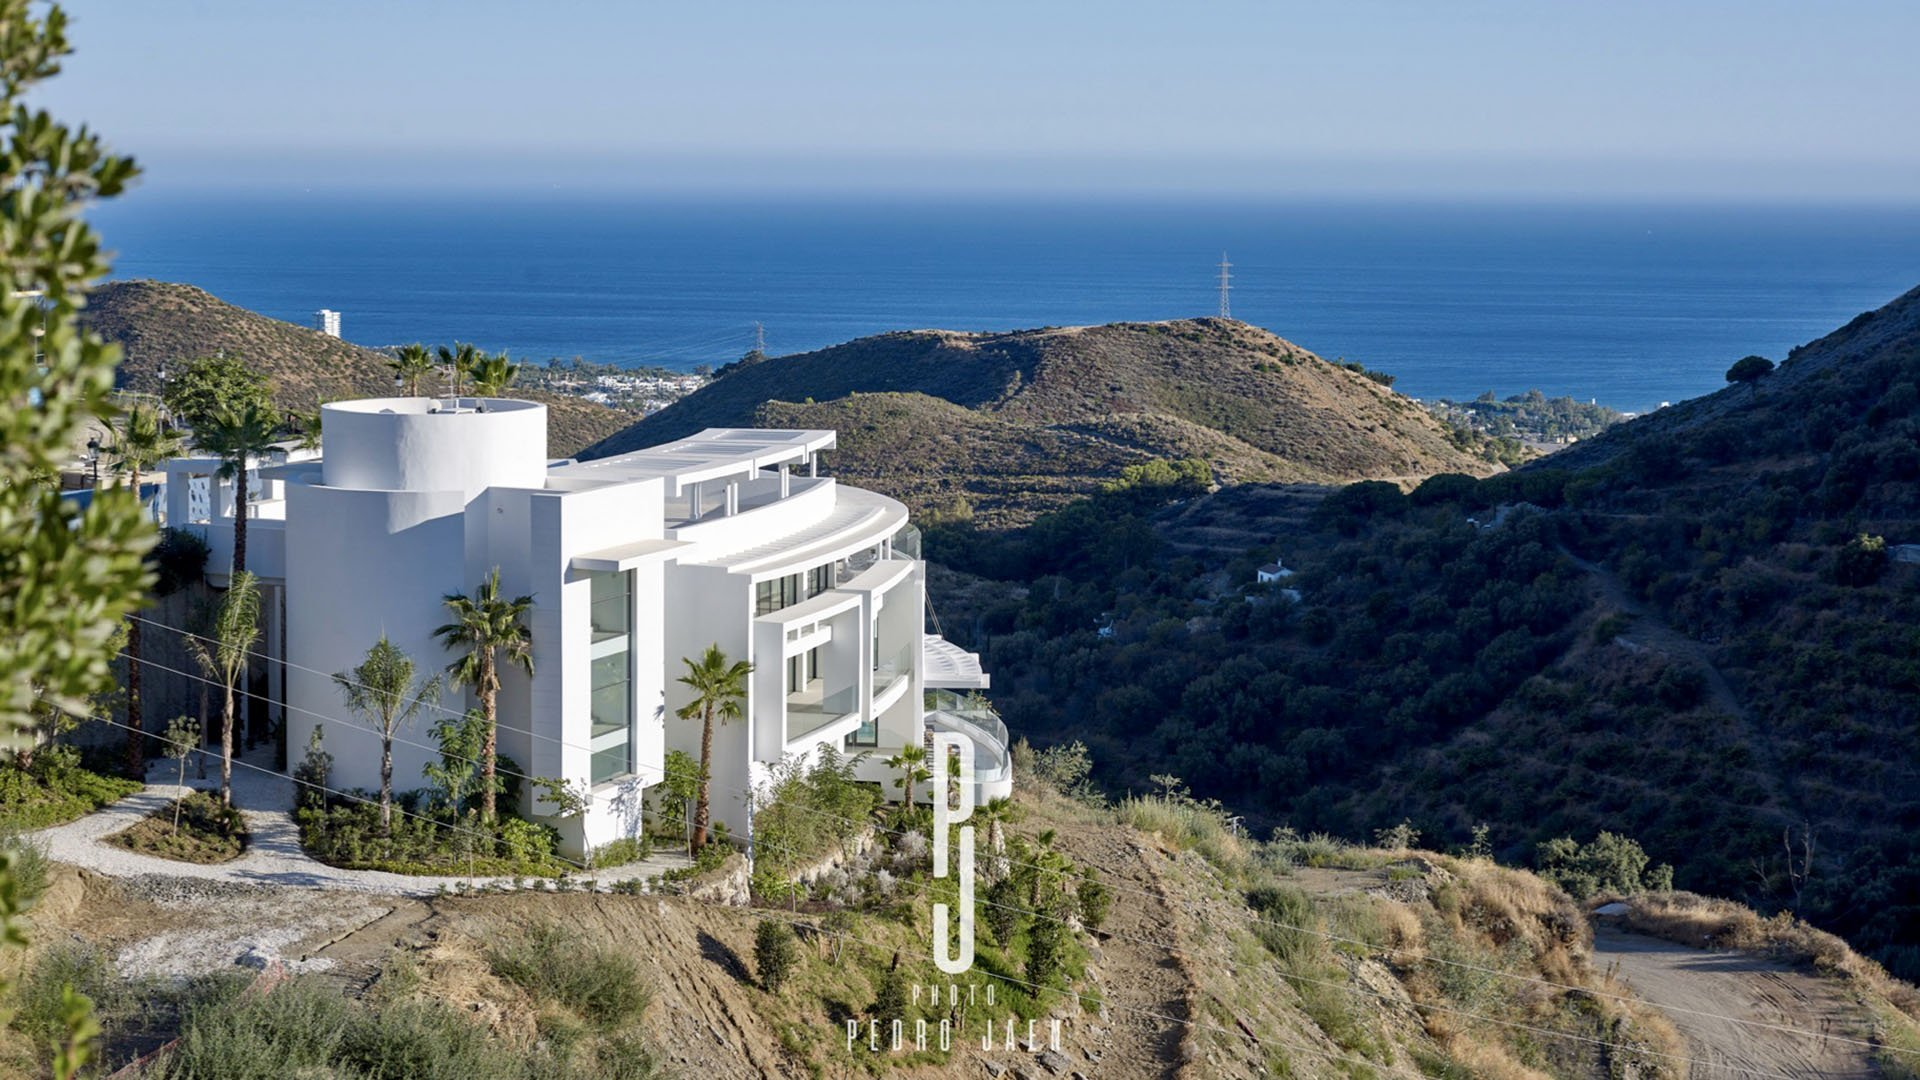 Palo Alto: The luxury resort just 5 minutes away from Marbella